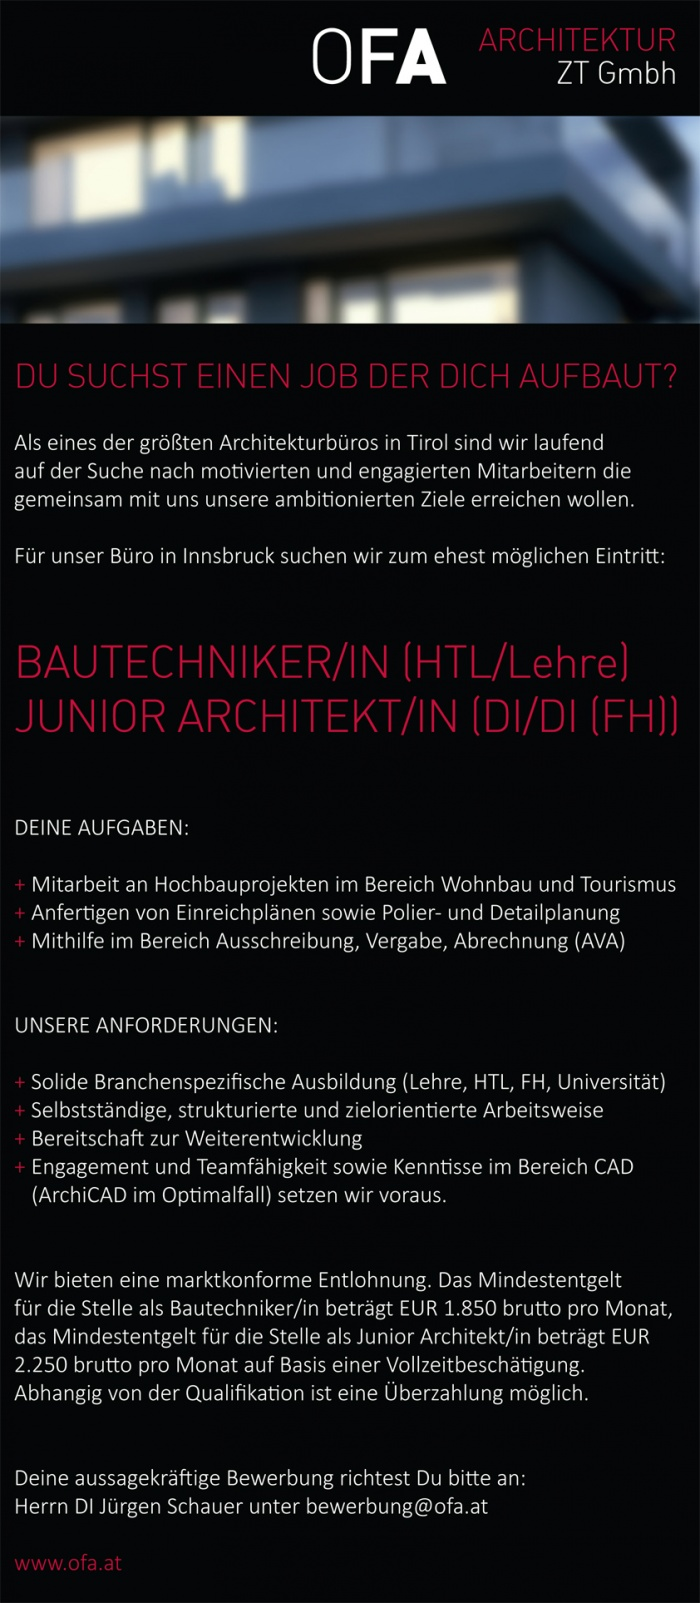 Bautechniker(in) / Junior Architekt(in)